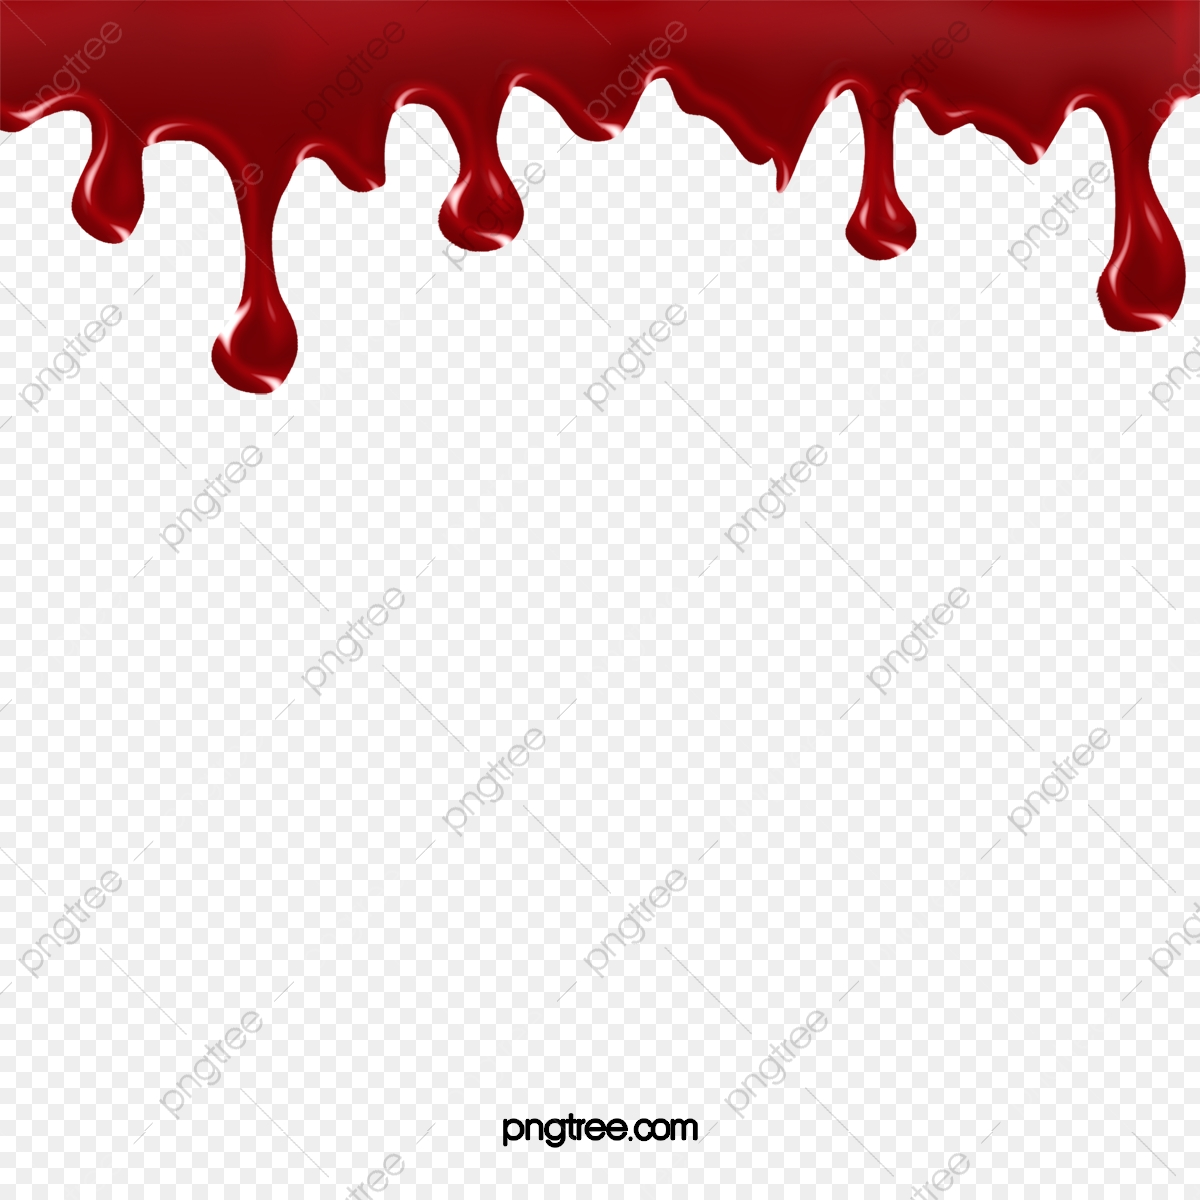 Red Dripping Blood Texture Blood Drop Bleeding Frame Png Transparent Clipart Image And Psd File For Free Download Really nice set of over 100 smoke brushes for your photoshop art. https pngtree com freepng red dripping blood texture 5162916 html